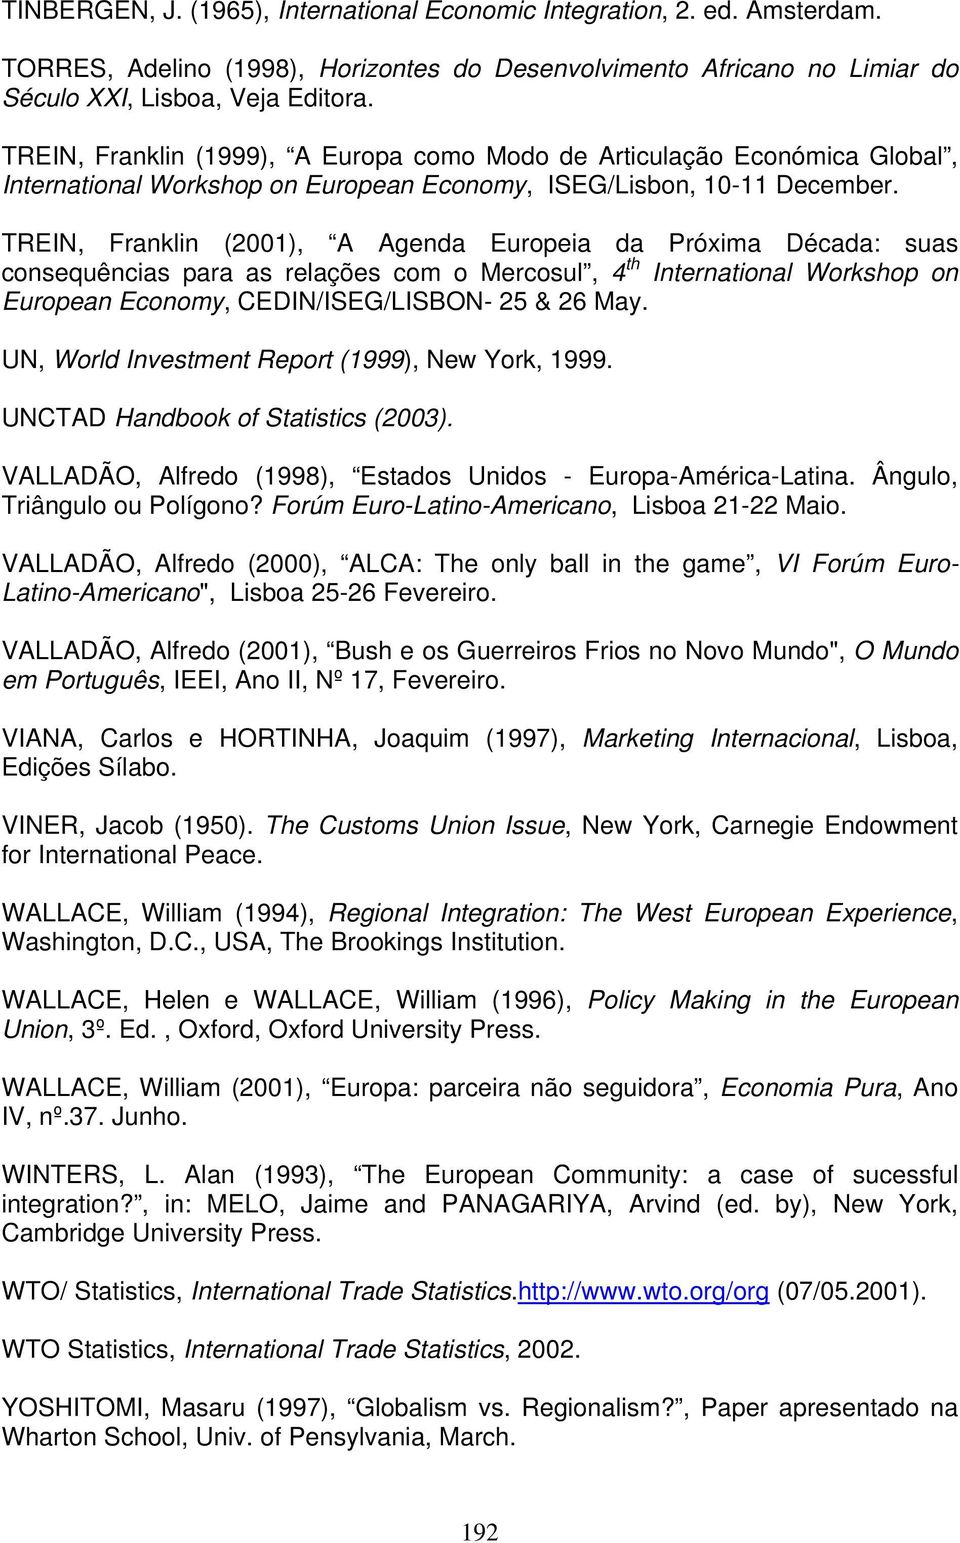 TREIN, Franklin (2001), A Agenda Europeia da Próxima Década: suas consequências para as relações com o Mercosul, 4 th International Workshop on European Economy, CEDIN/ISEG/LISBON- 25 & 26 May.